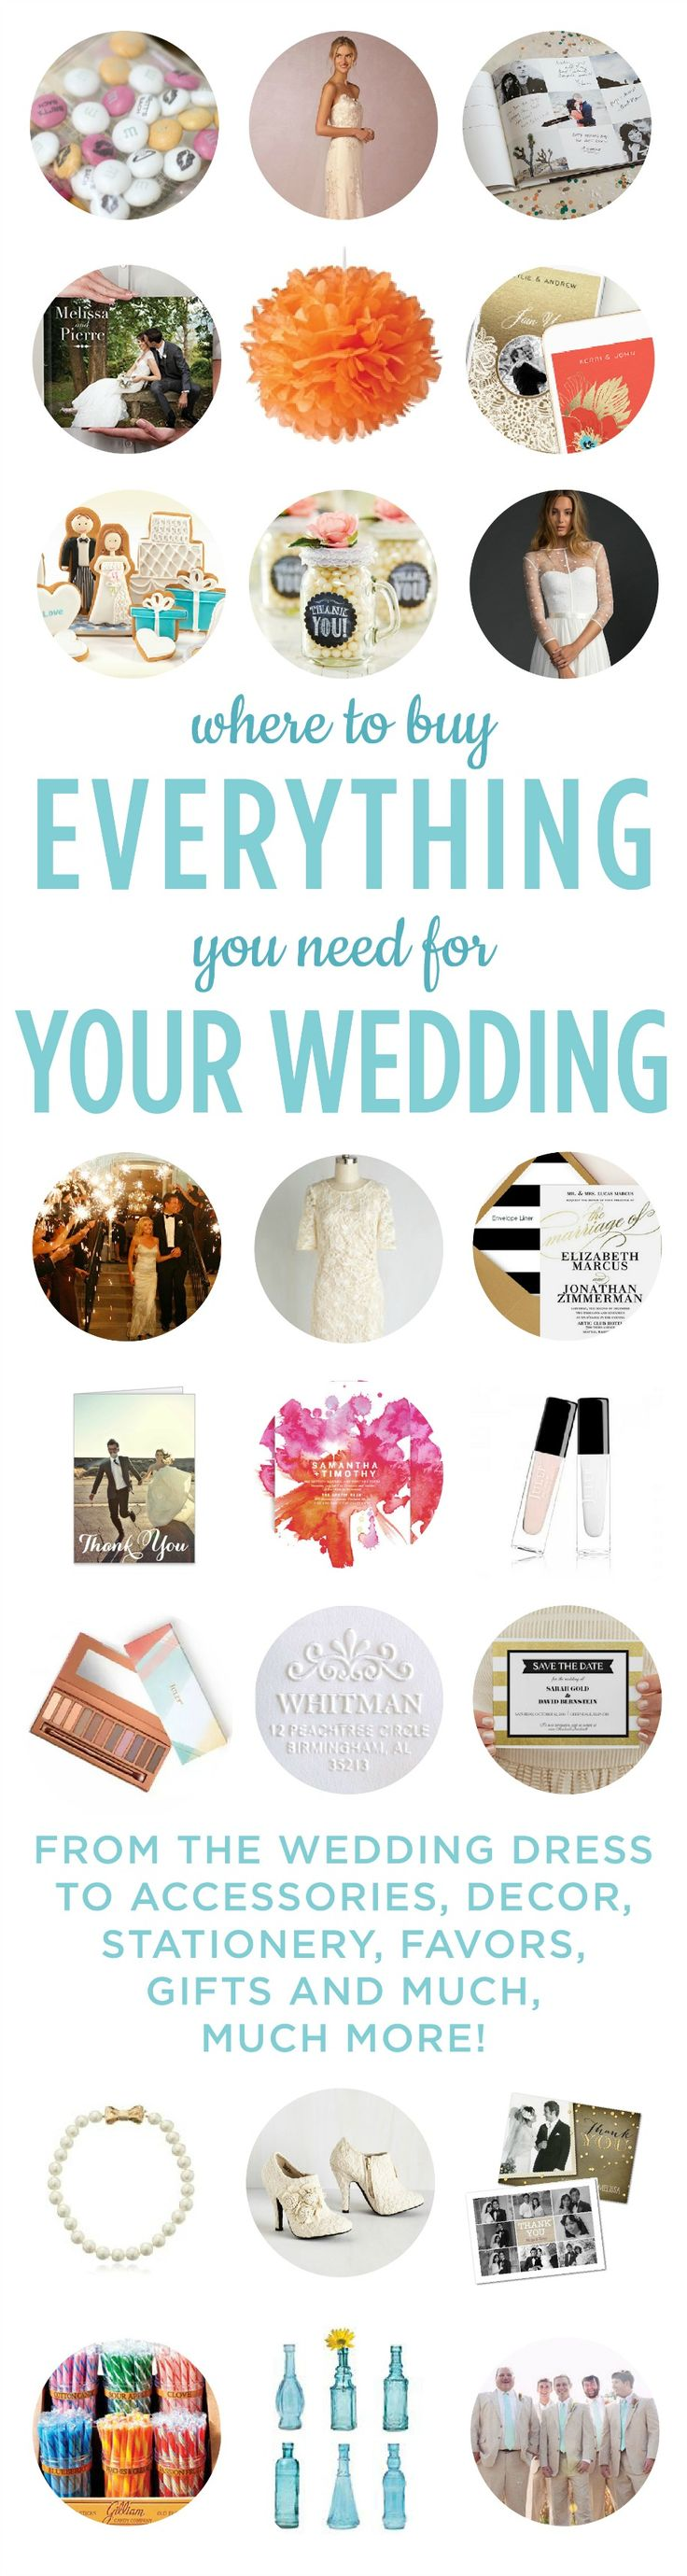 Looking for an item for your wedding? Check out our list of favorite wedding resources to help you plan a wedding on a budget! (Plus exclusive discounts!) #budgetsavvybride